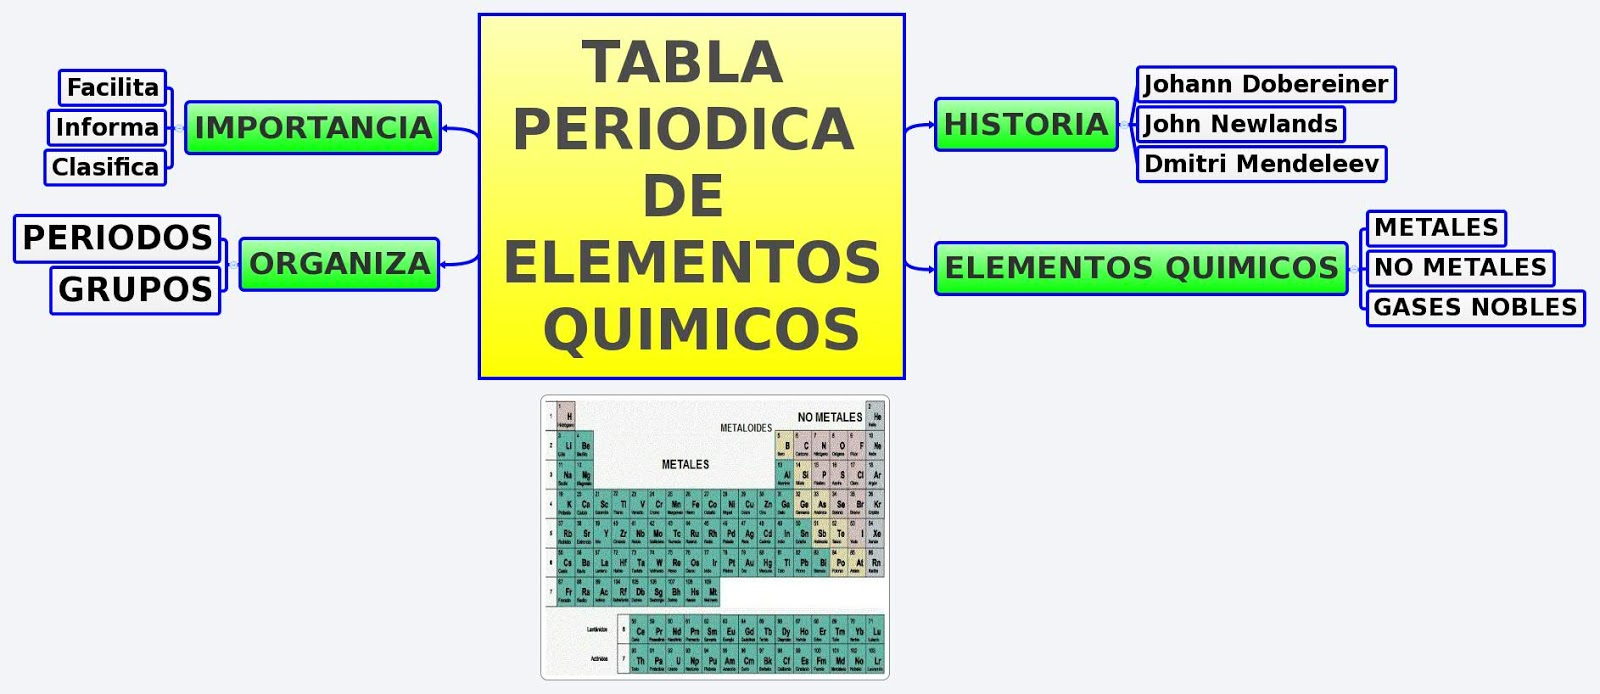 tabla periodica actual pdf gallery periodic table and sample with tabla periodica de los elementos densidad - Tabla Periodica De Los Elementos Densidad